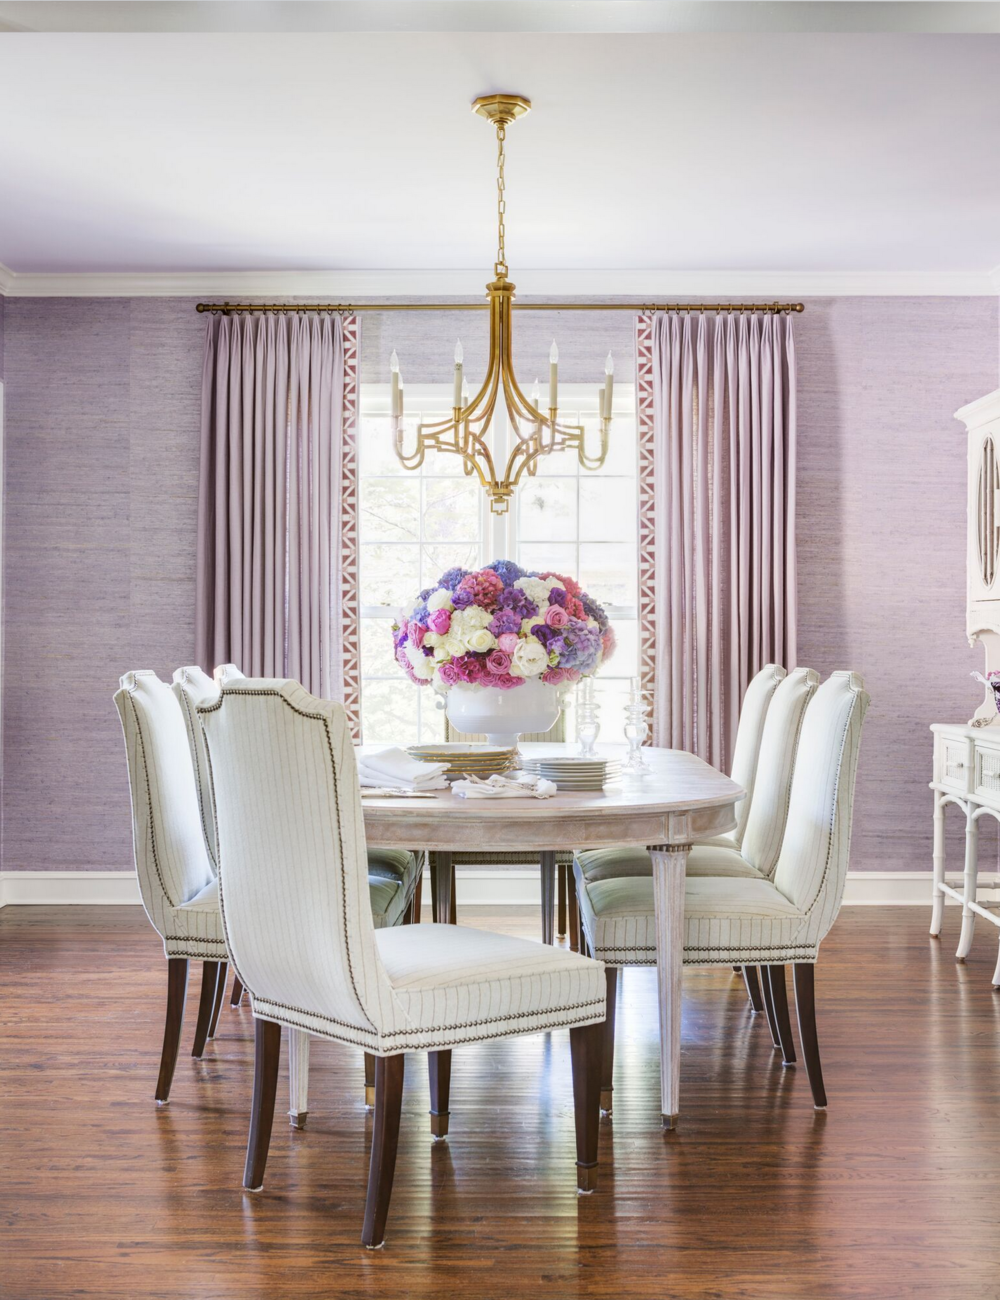 Design by Molly Ray Young | Photography by Rett Peek